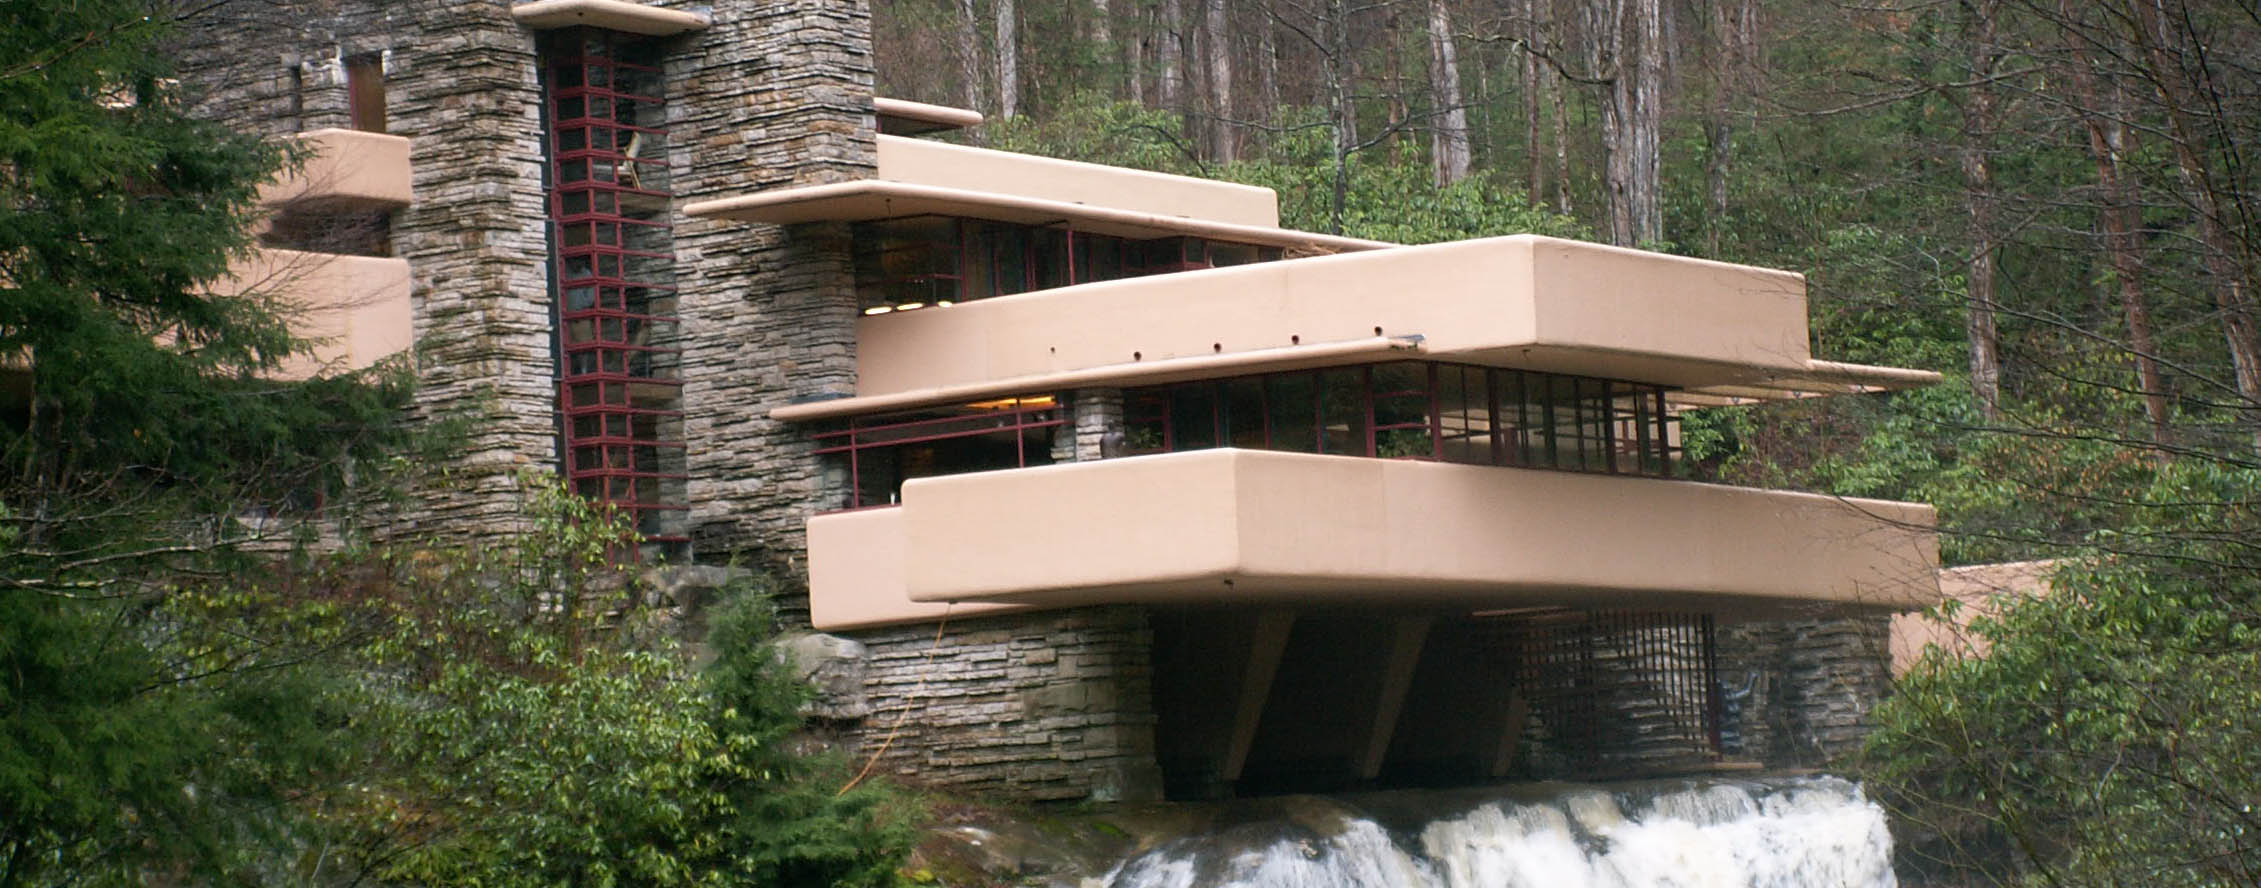 Western arts and crafts - Frank Lloyd Wright Designed Fallingwater In Western Pennsylvania For The Kaufmann Family Built Between 1936 And 1939 It Is A National Historic Landmark